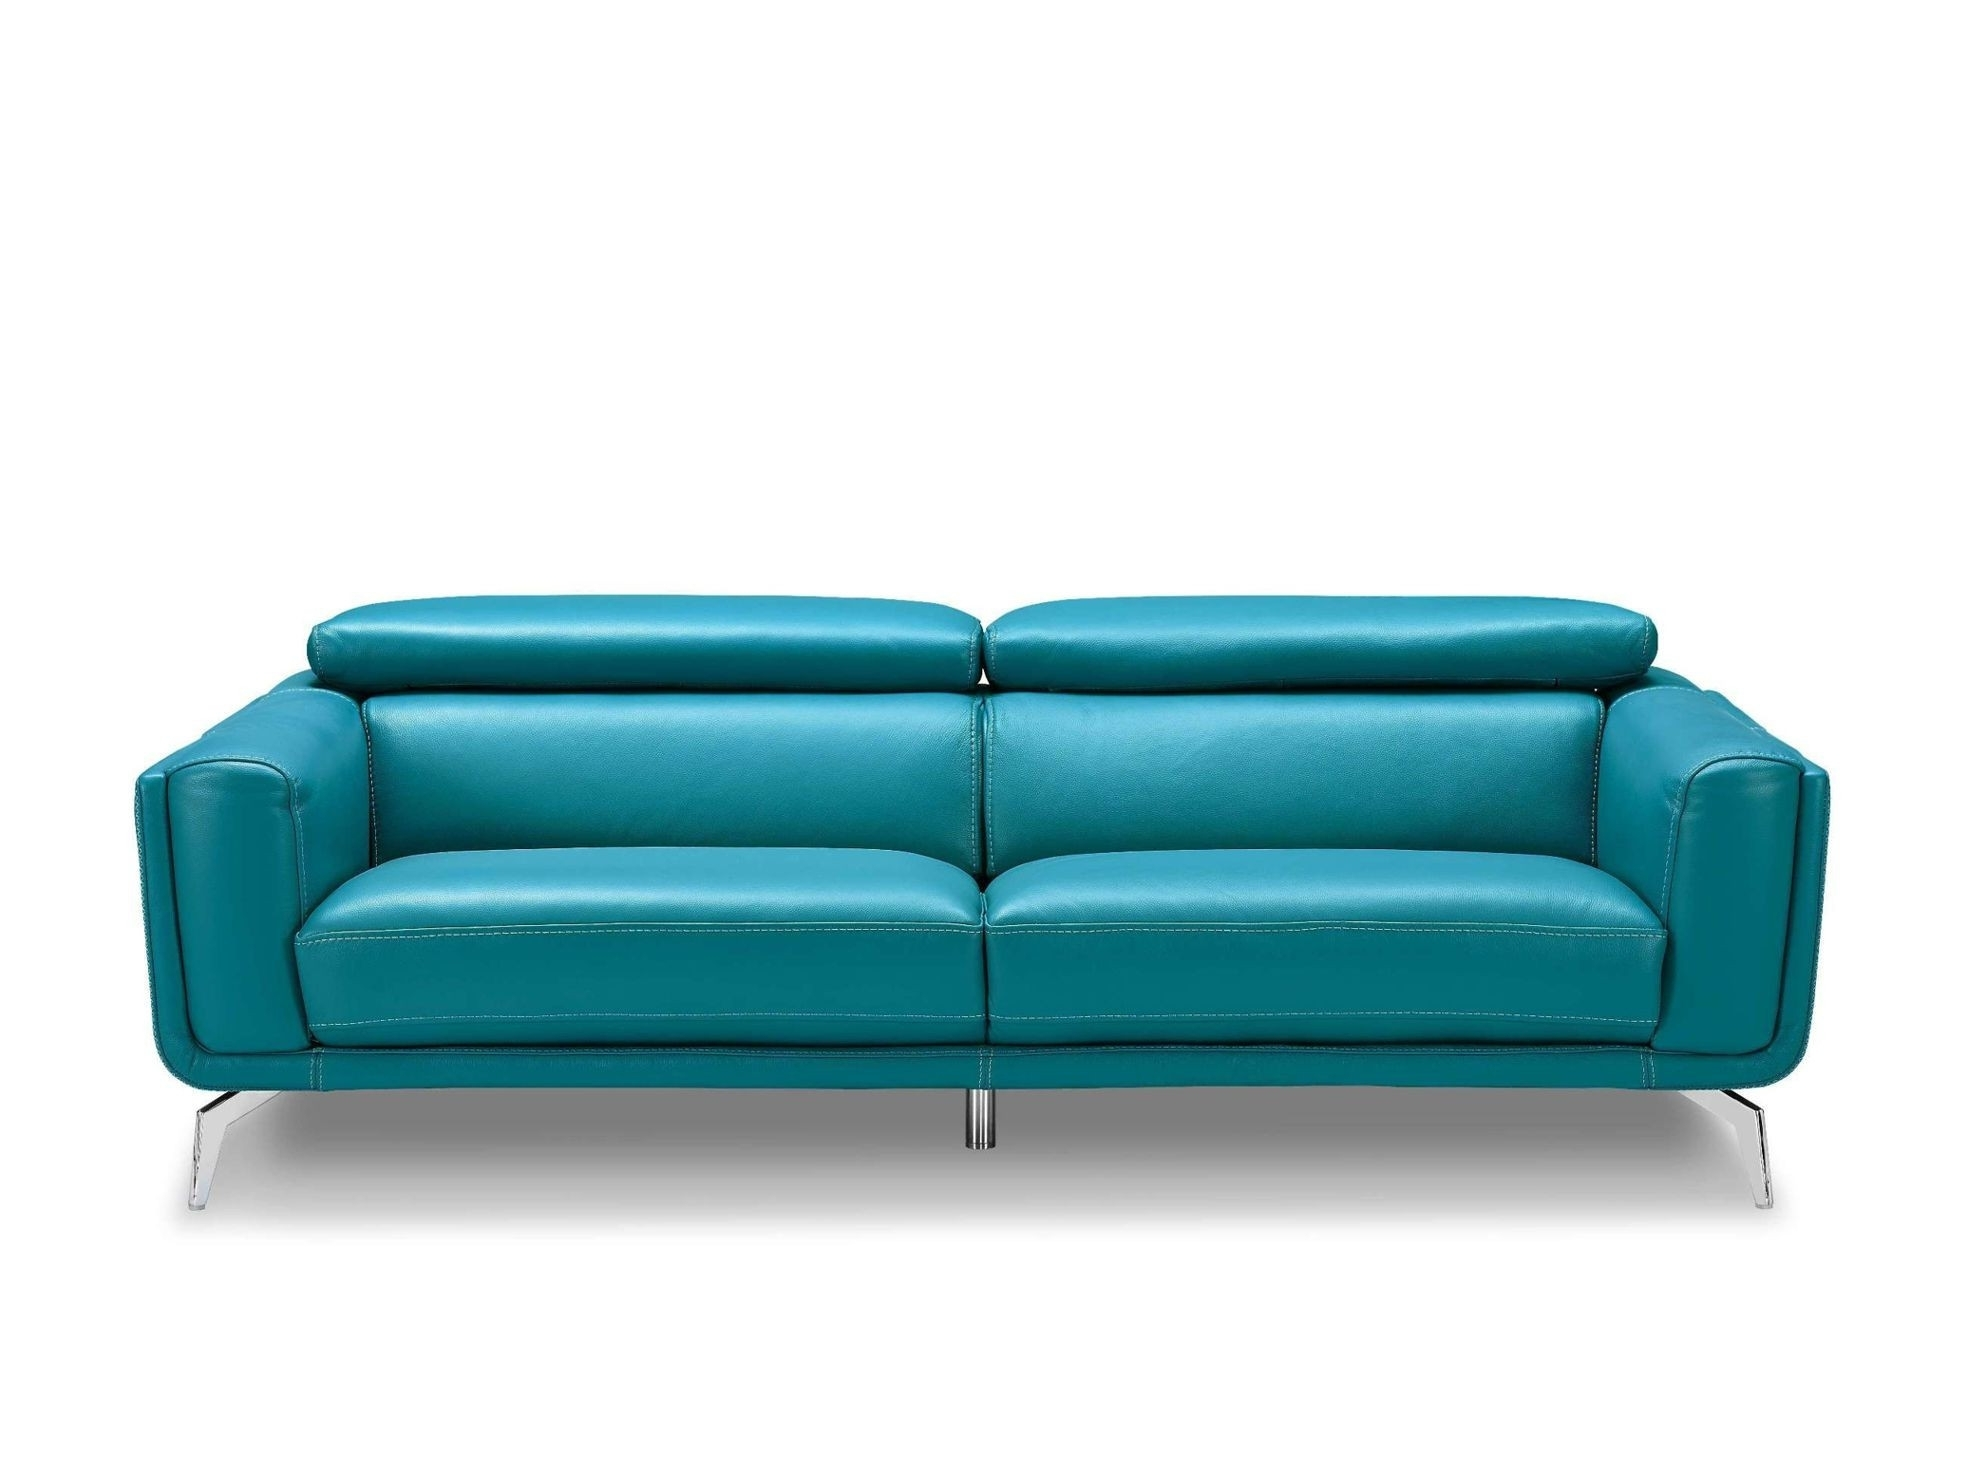 Newest High Point Nc Sectional Sofas Regarding Sofa Modernr Ideas For Living Room Hupehome Contemporary Furniture (View 12 of 15)